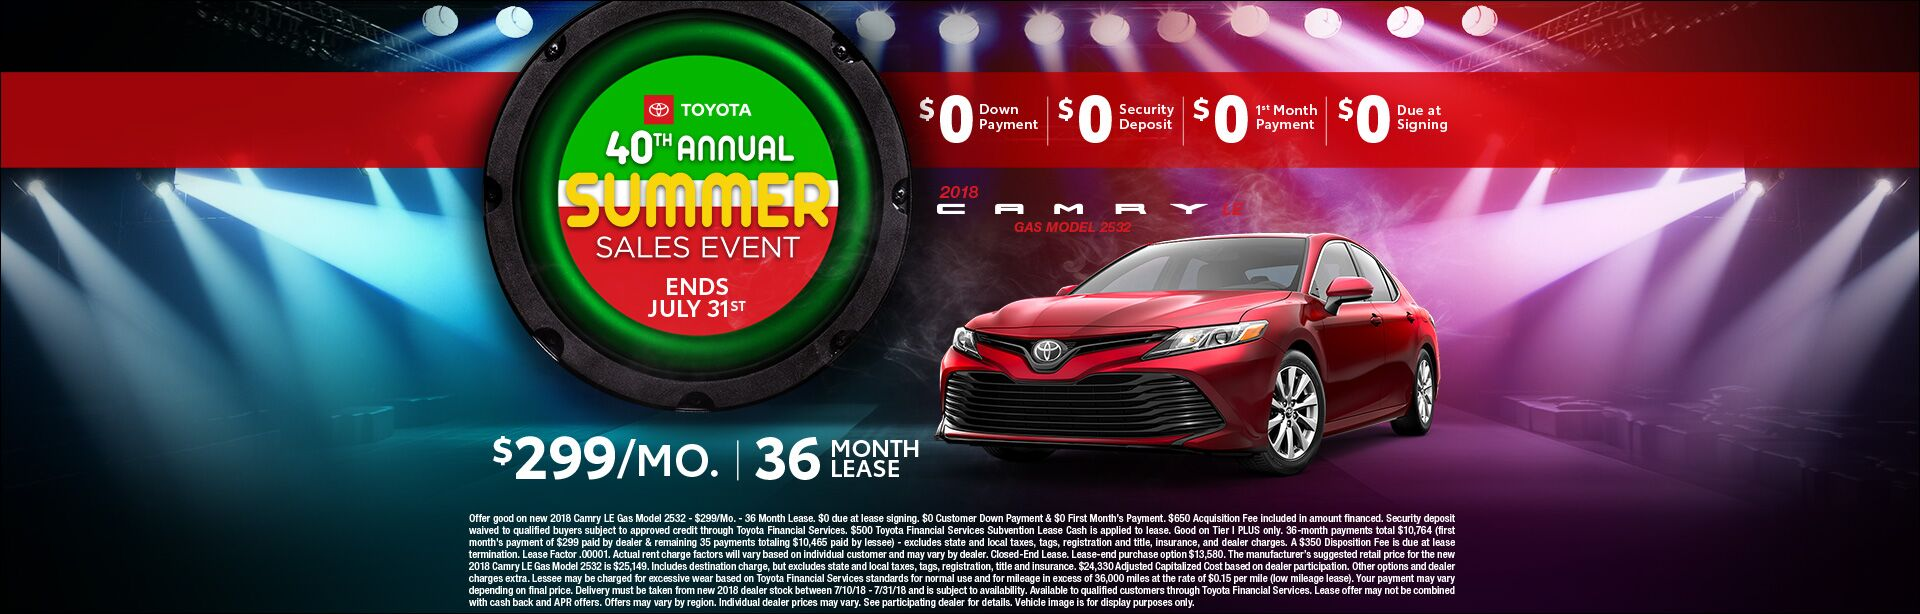 Toyota Summer Sales Event Camry Lease